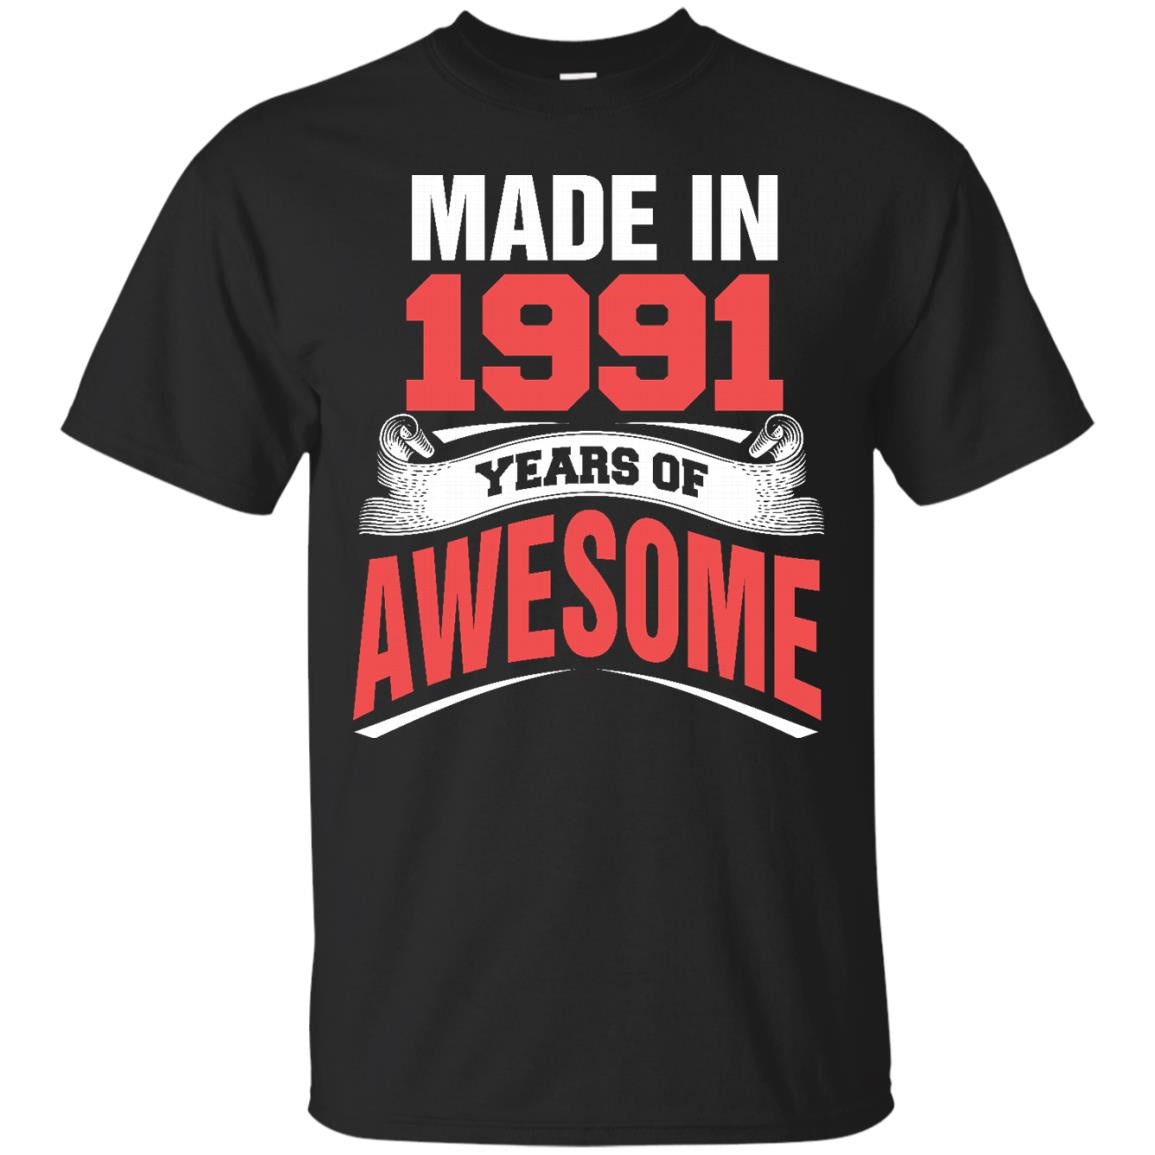 1991 Shirts Made In 1991 Year of Awesome T-shirts Hoodies Sweatshirts